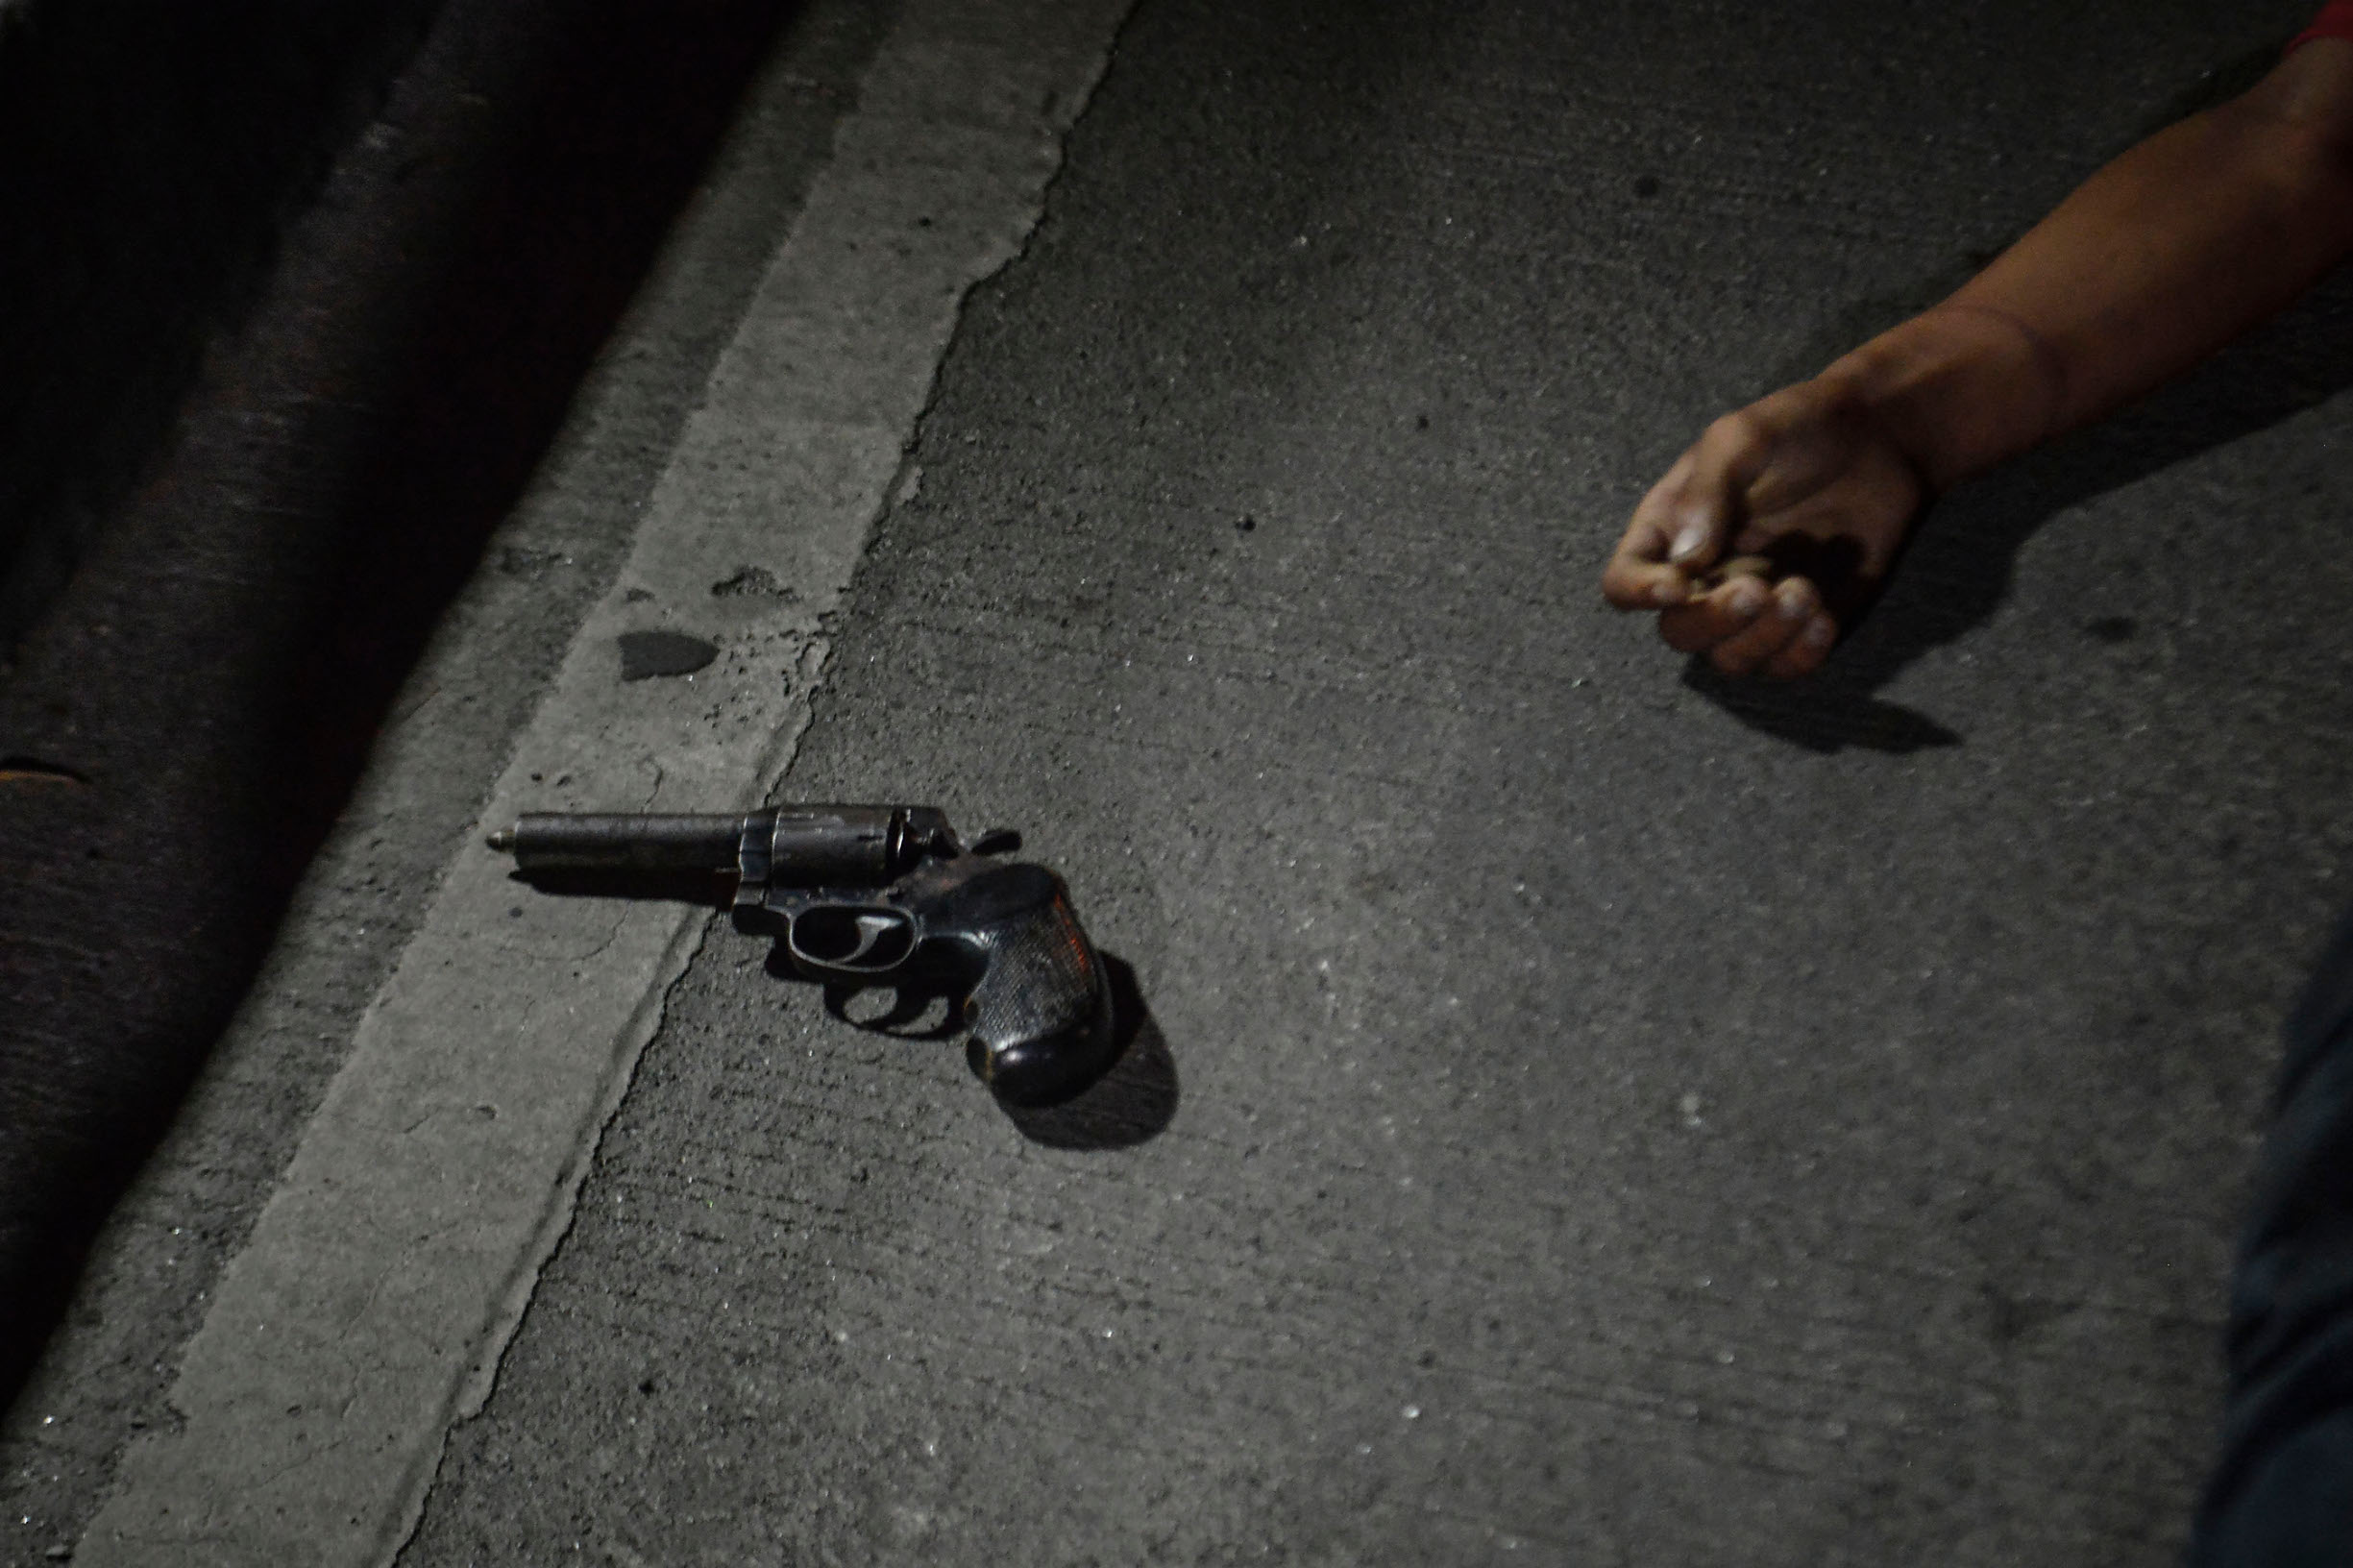 A revolver lies next to the body of a man who was killed by police during a police operation in Manila, Philippines, August 17, 2017. Amidst the drug crackdown's deadliest week yet, the shooting of a 17 year old schoolboy has sparked outrage over the drug war killings that has claimed more than 13,000 lives in one year. According to police, Kian Loyd Delos Santos fought back against police operatives during an anti-illegal drugs operation, but several witnesses and security footage saw Delos Santos being dragged away by plainclothes police to a dark lot where he was killed. Forensic evidence also suggests that Delos Santos did not fire a weapon. Thousands marched the streets during Delos Santos' funeral in what was the biggest demonstration yet condemning the thousands of cases of extrajudicial killings under President Rodrigo Duterte's war on drugs.  (Photo by Ezra Acayan/NurPhoto)